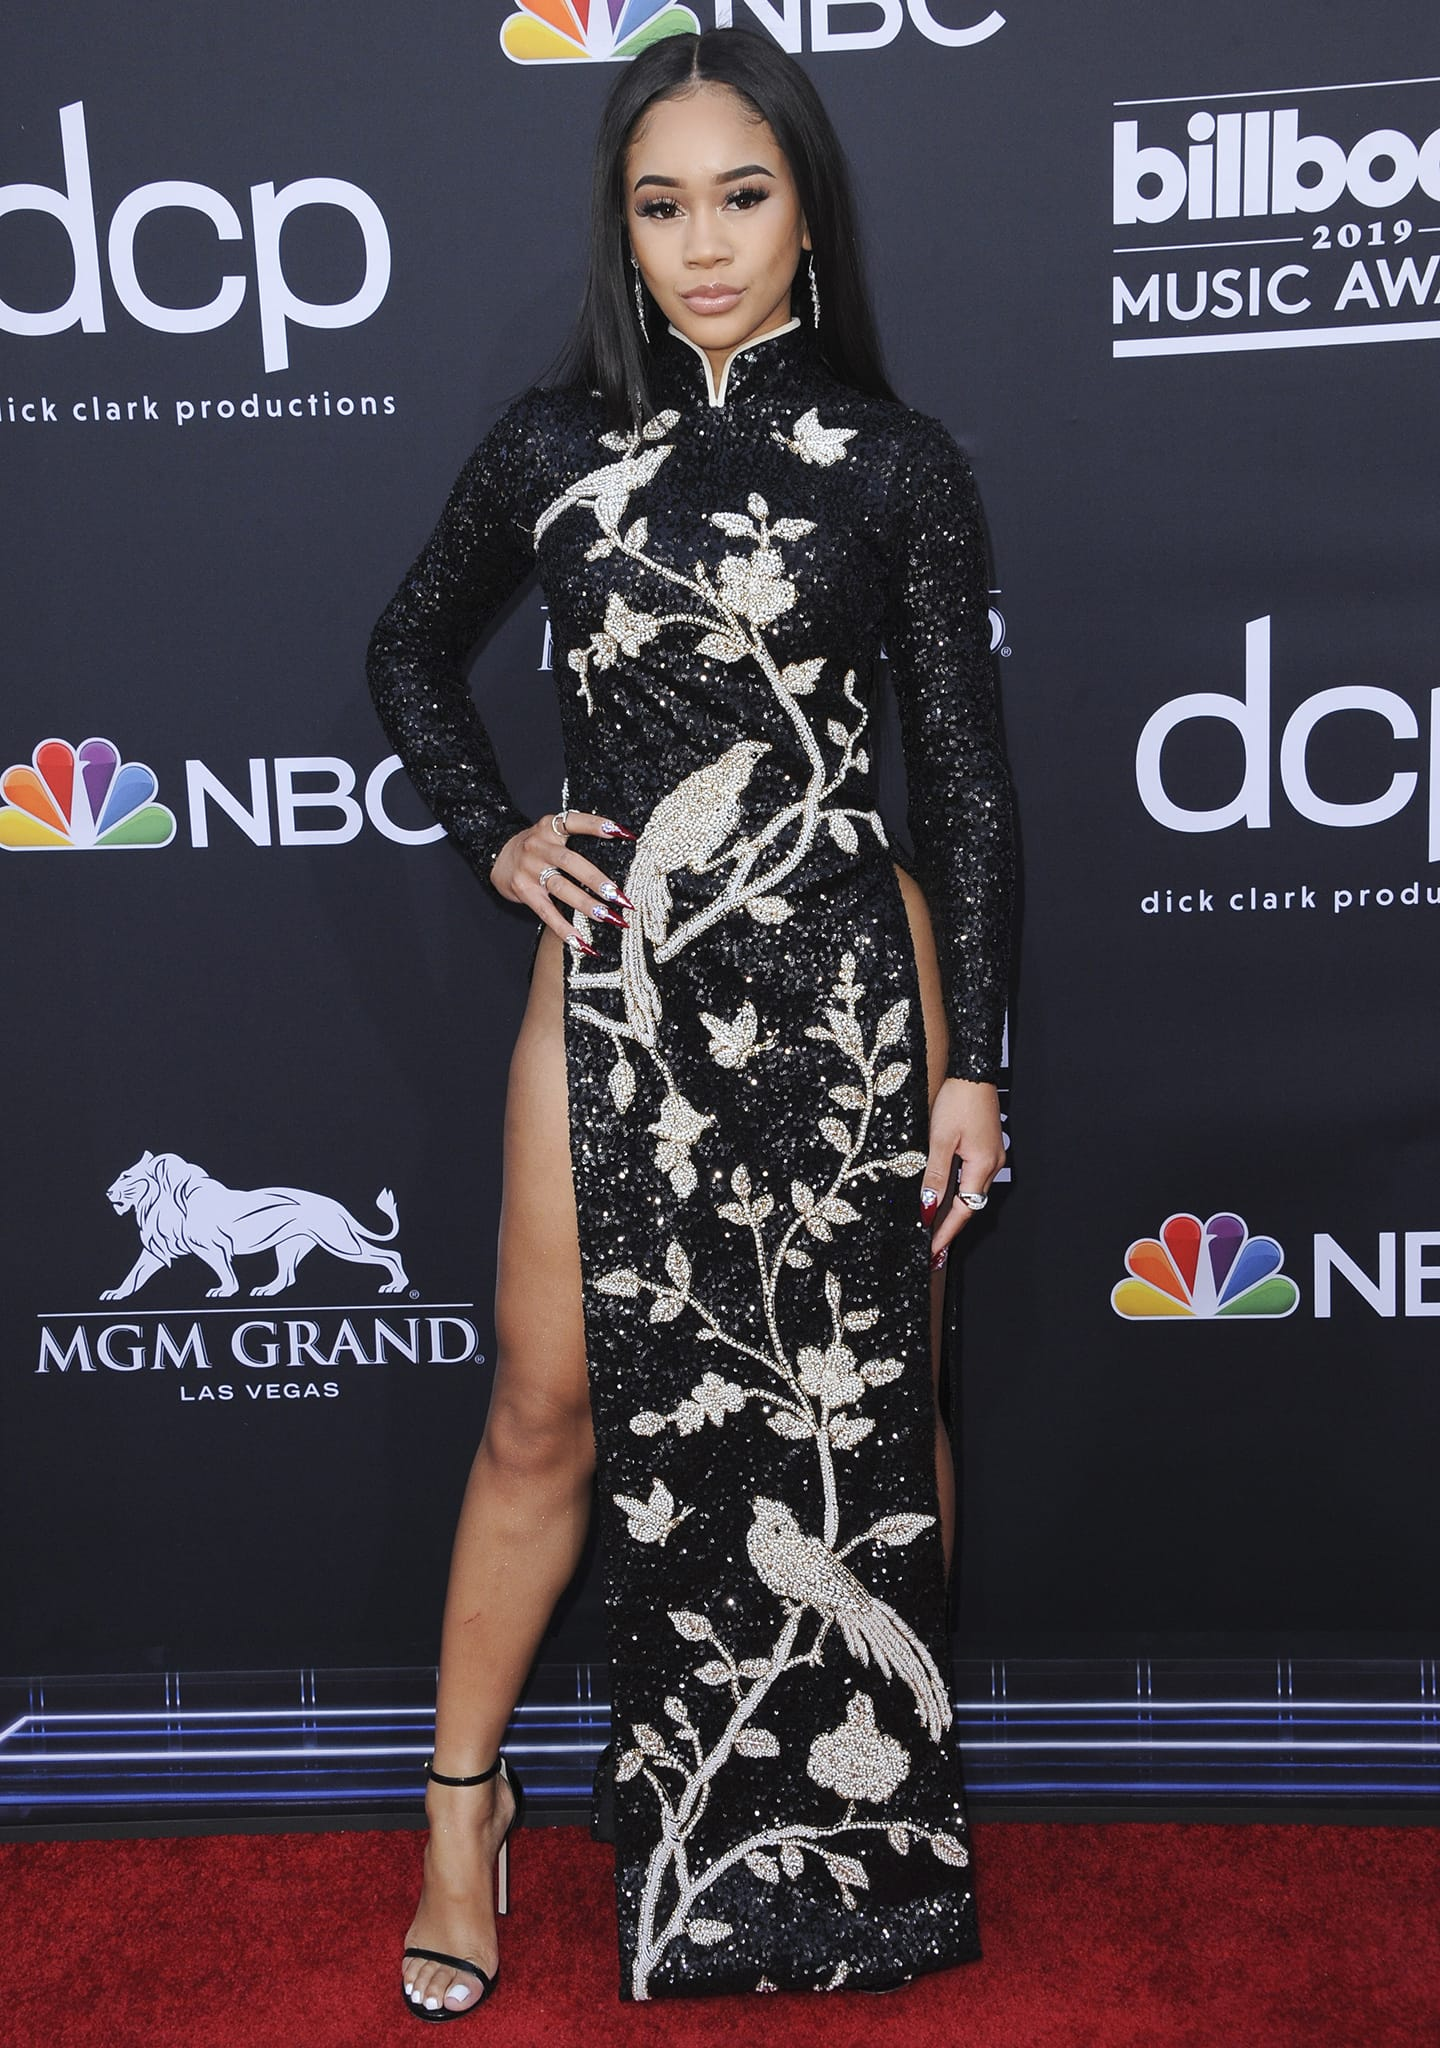 Saweetie at the 2019 Billboard Music Awards on May 2, 2019